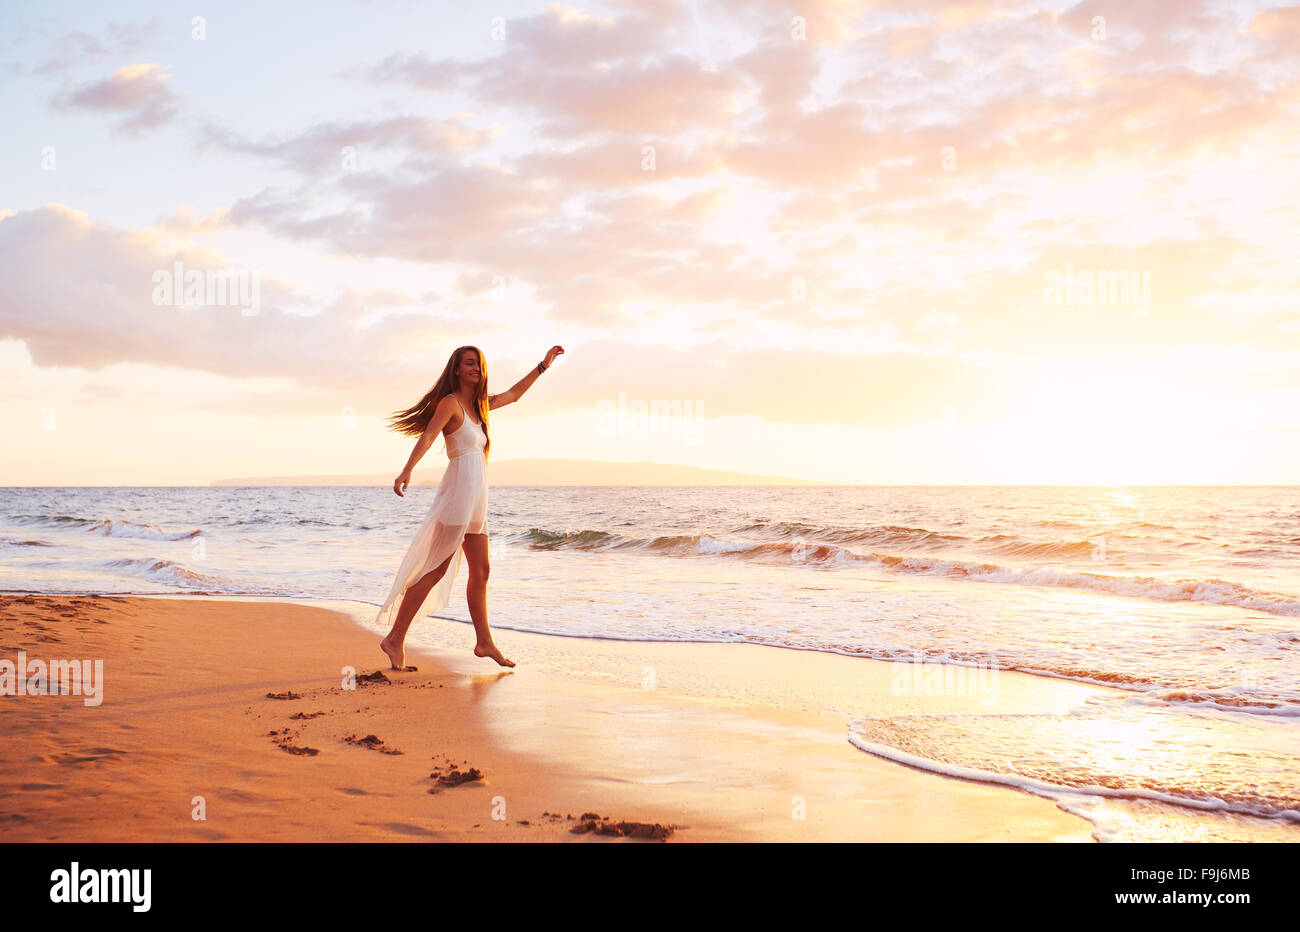 Happy carefree woman dancing at sunset on the beach. Happy free lifestyle concept. - Stock Image